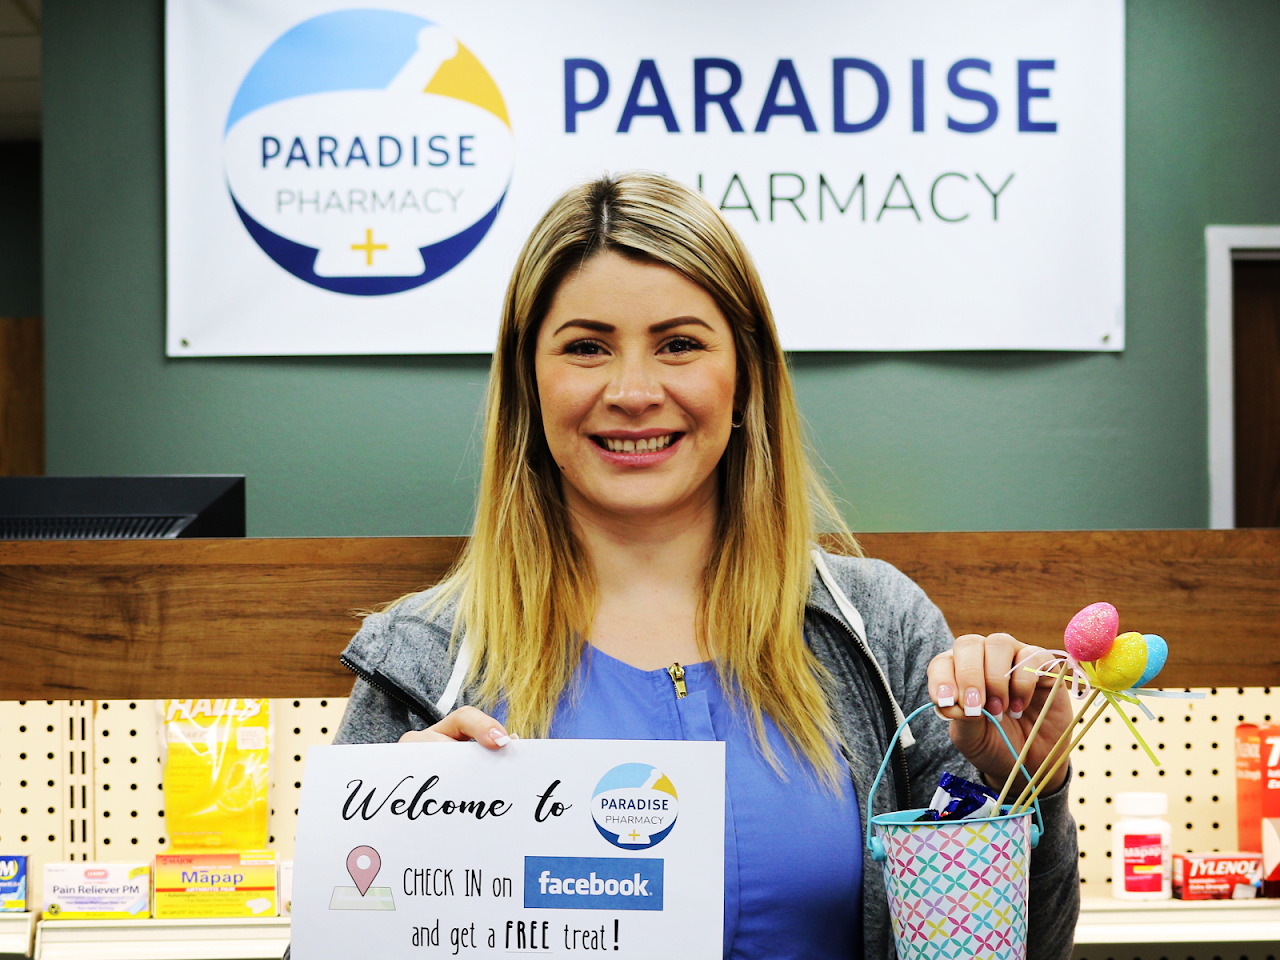 Paradise Pharmacy image 1